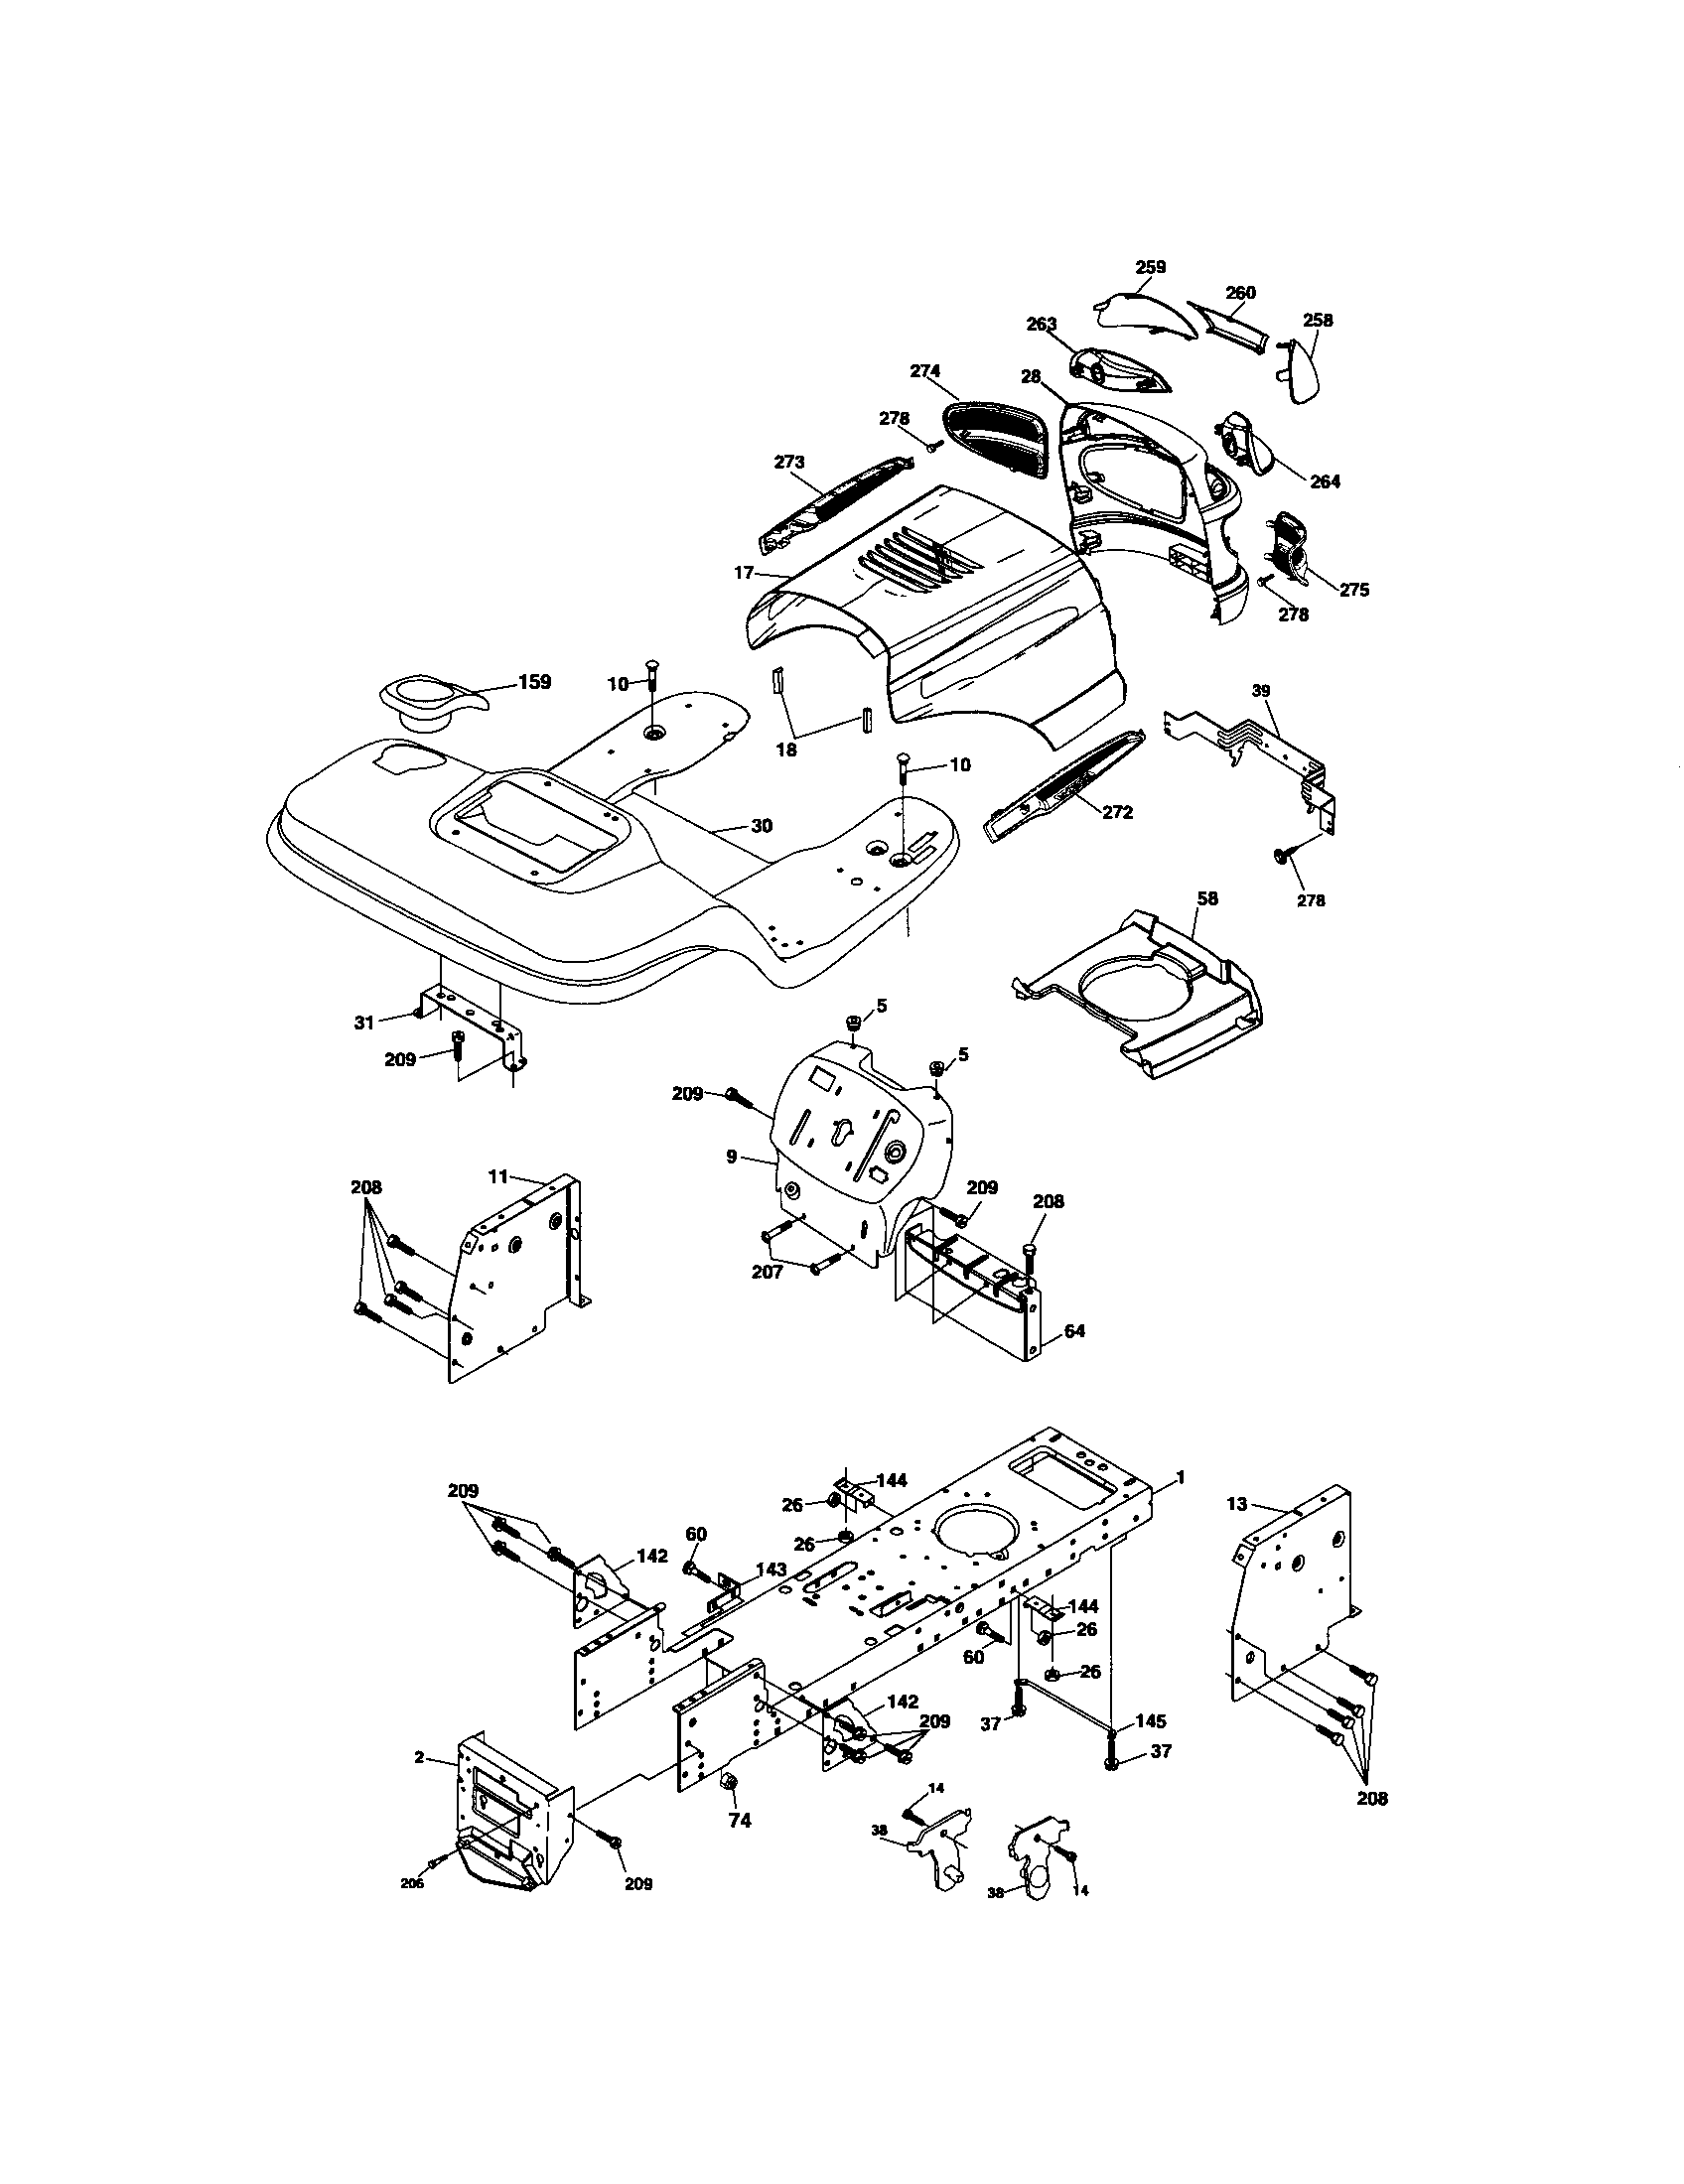 Craftsman 917275820 chassis and enclosures diagram